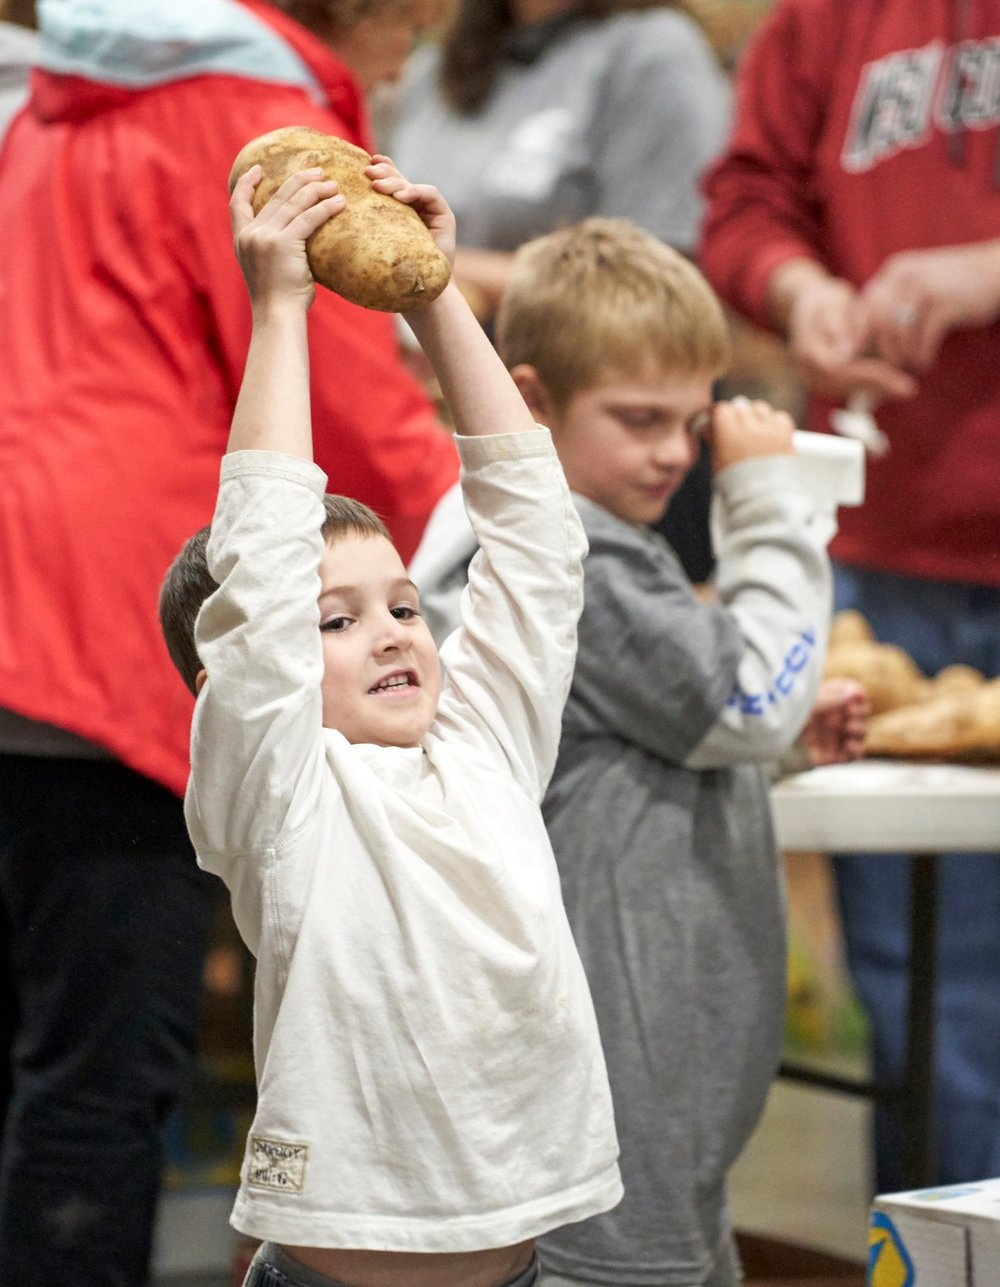 The alumni group Cougs in the Community from Washington State University brought family members of all ages to pack a large shipment of potatoes, weighing 30,000 pounds!